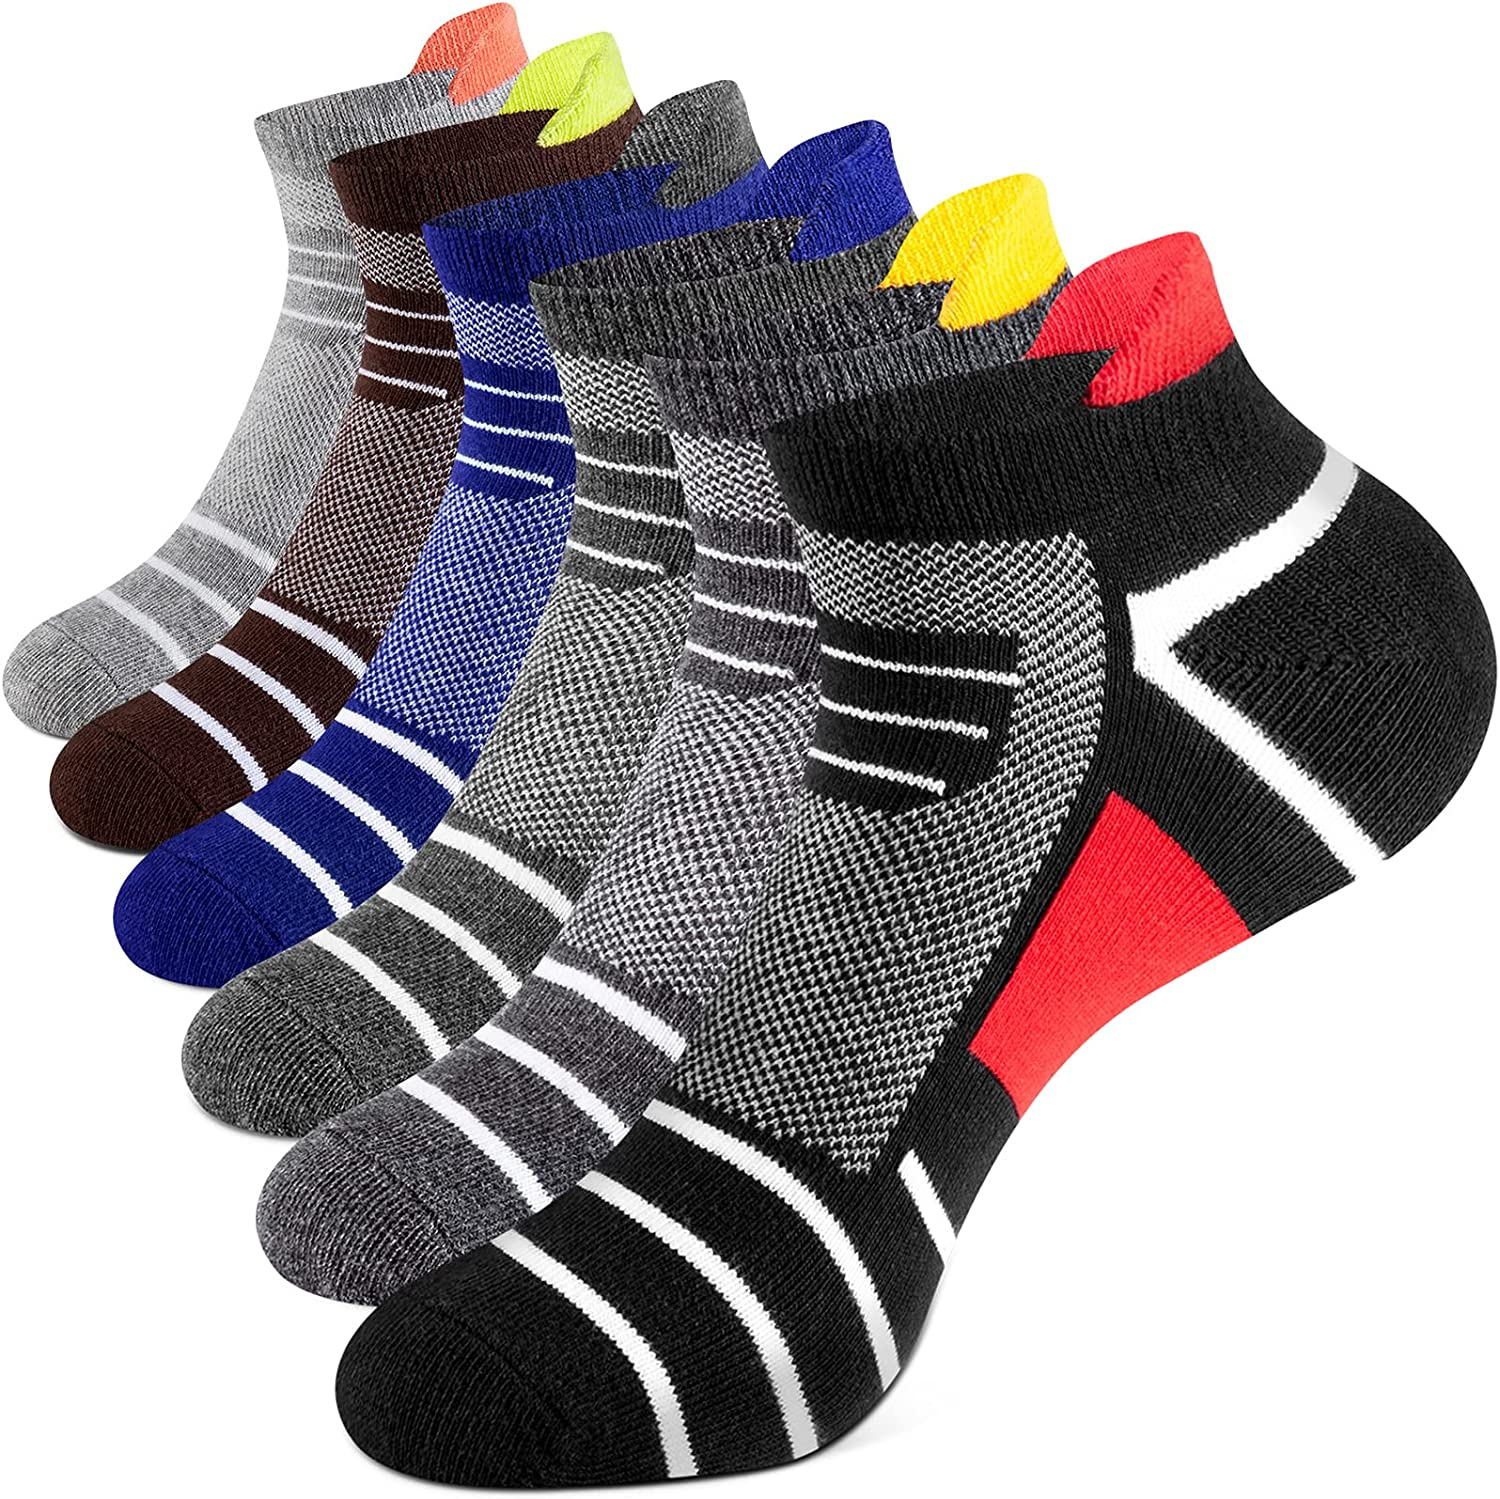 Onmaita Ankle Socks for Men and Women, 6 Pairs Cotton Socks for Work, Sport and Daily Life